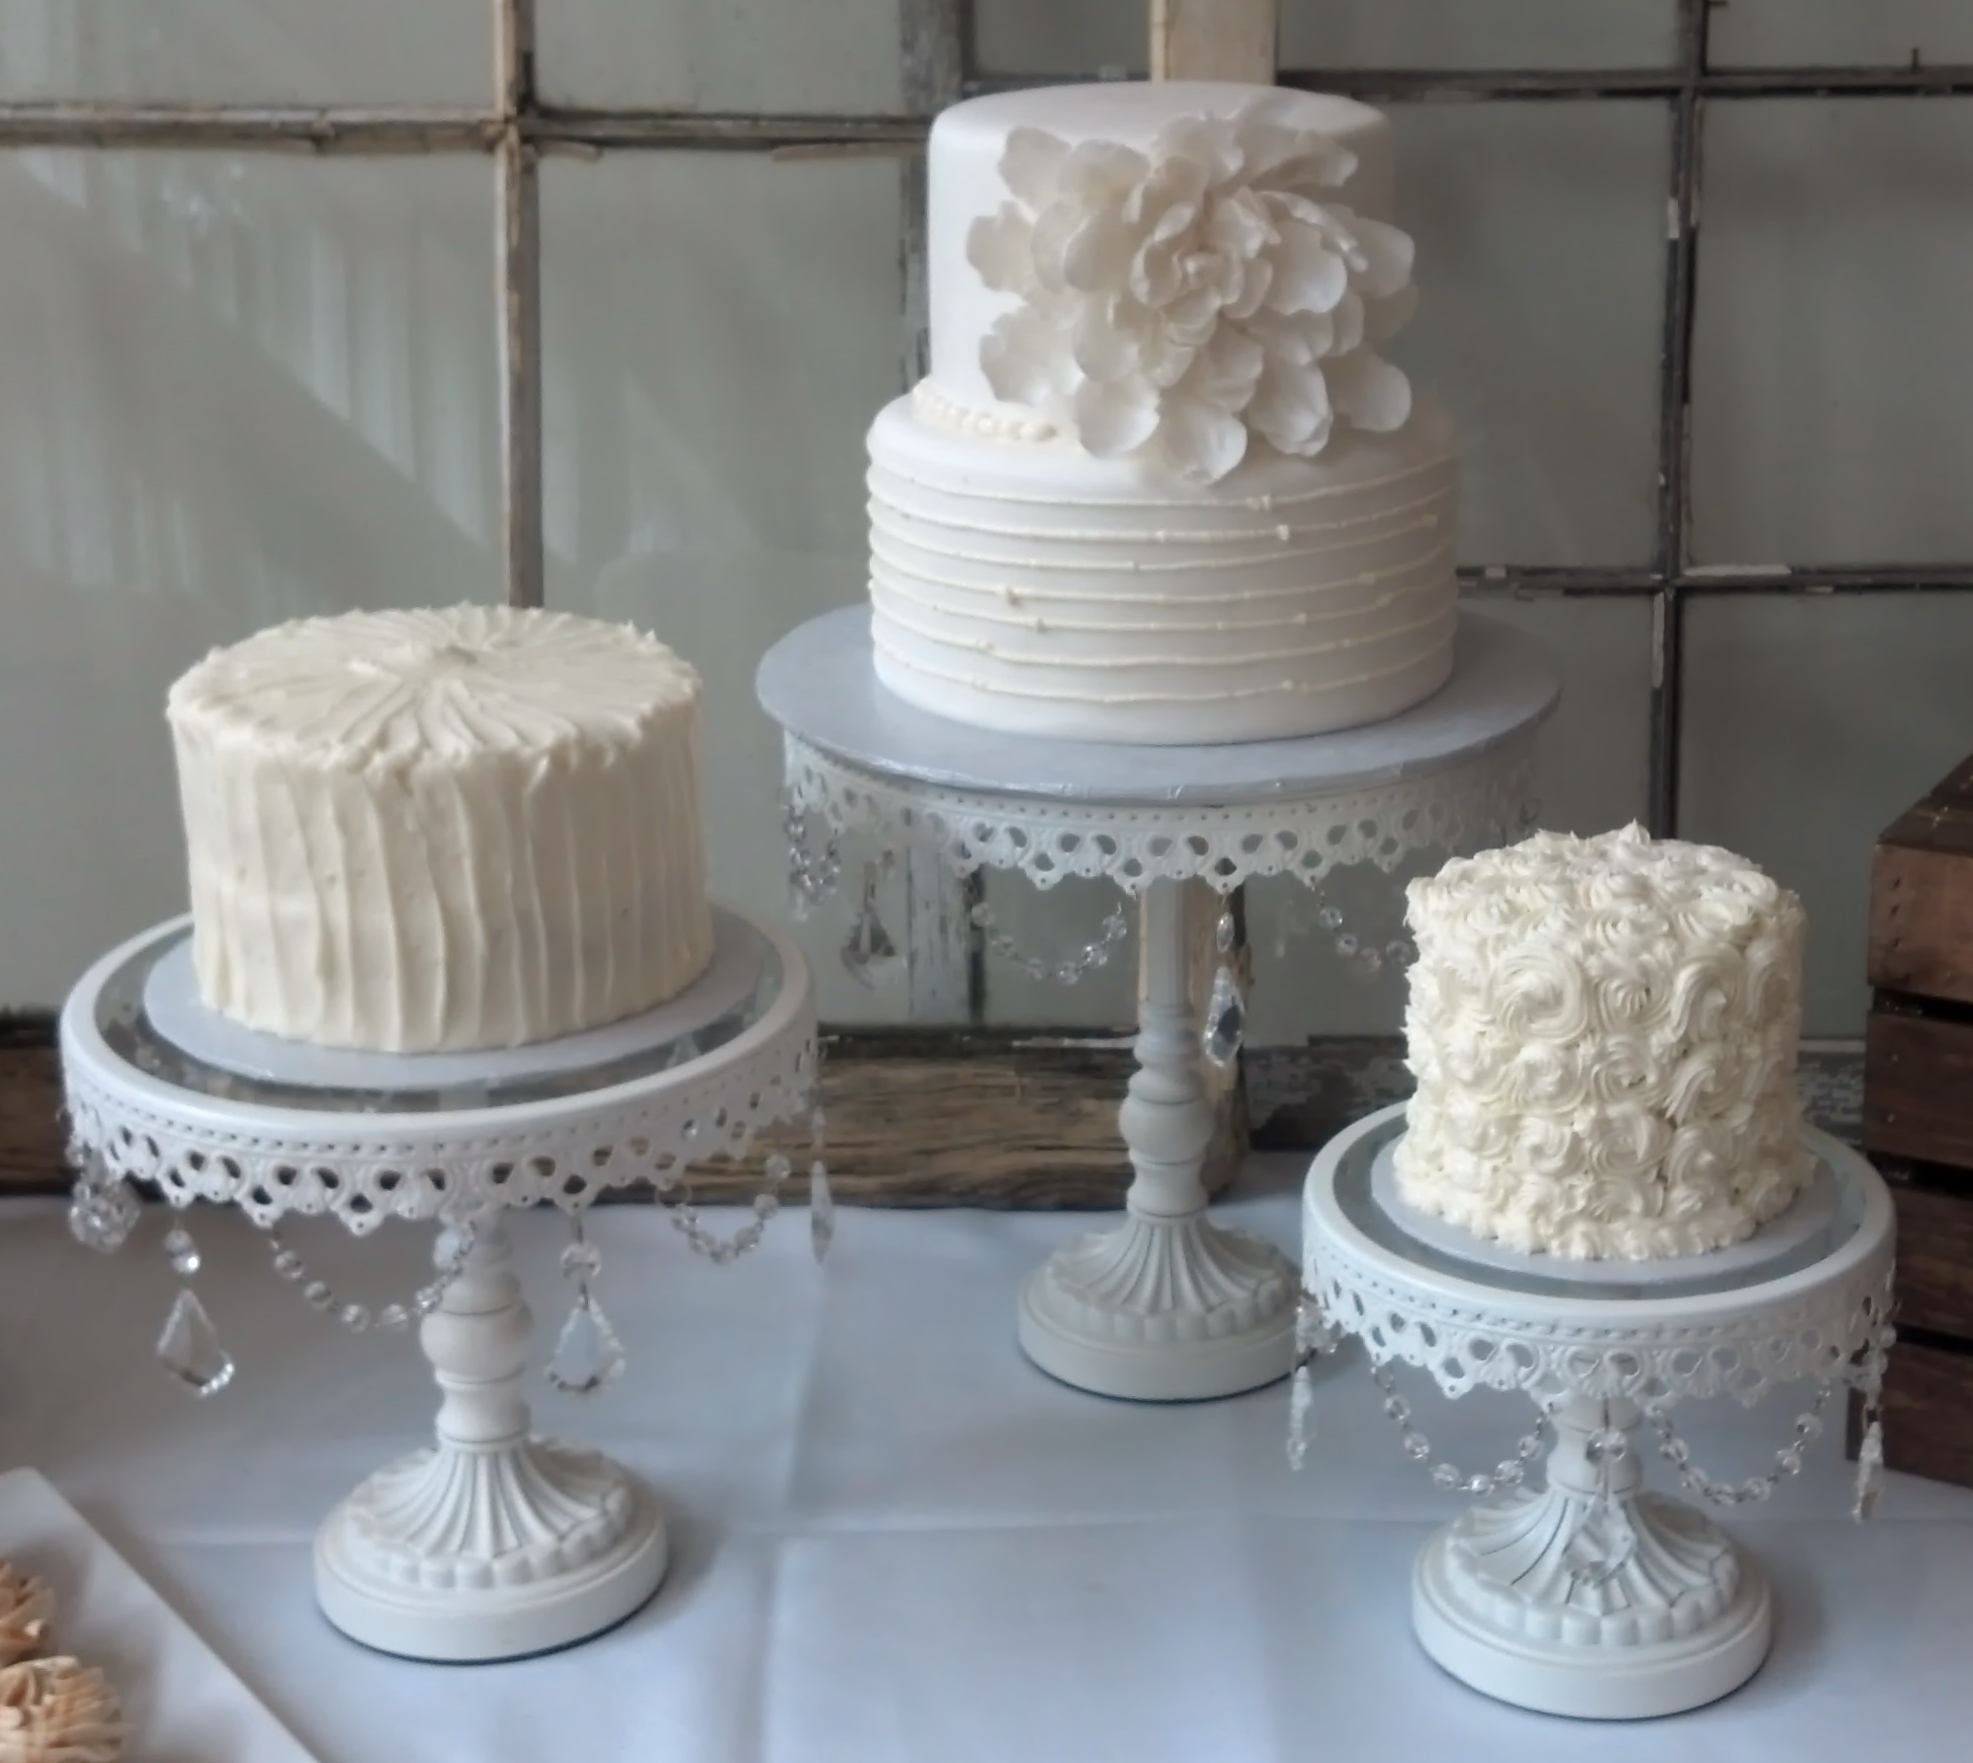 Ways to save on wedding cakes excerpted from Bridal Guide